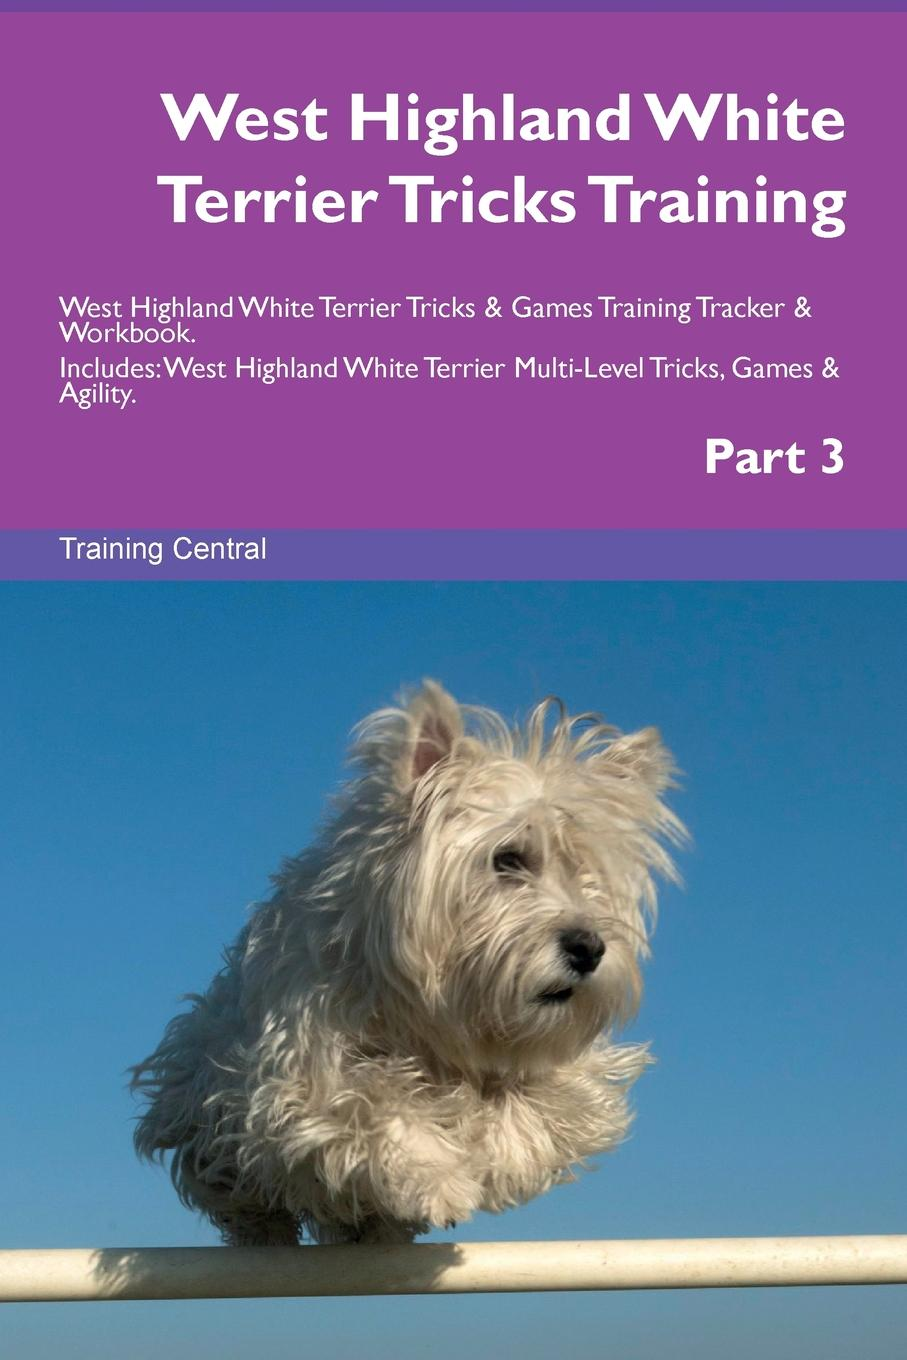 Training Central West Highland White Terrier Tricks Training West Highland White Terrier Tricks . Games Training Tracker . Workbook. Includes. West Highland White Terrier Multi-Level Tricks, Games . Agility. Part 3 this book loves you